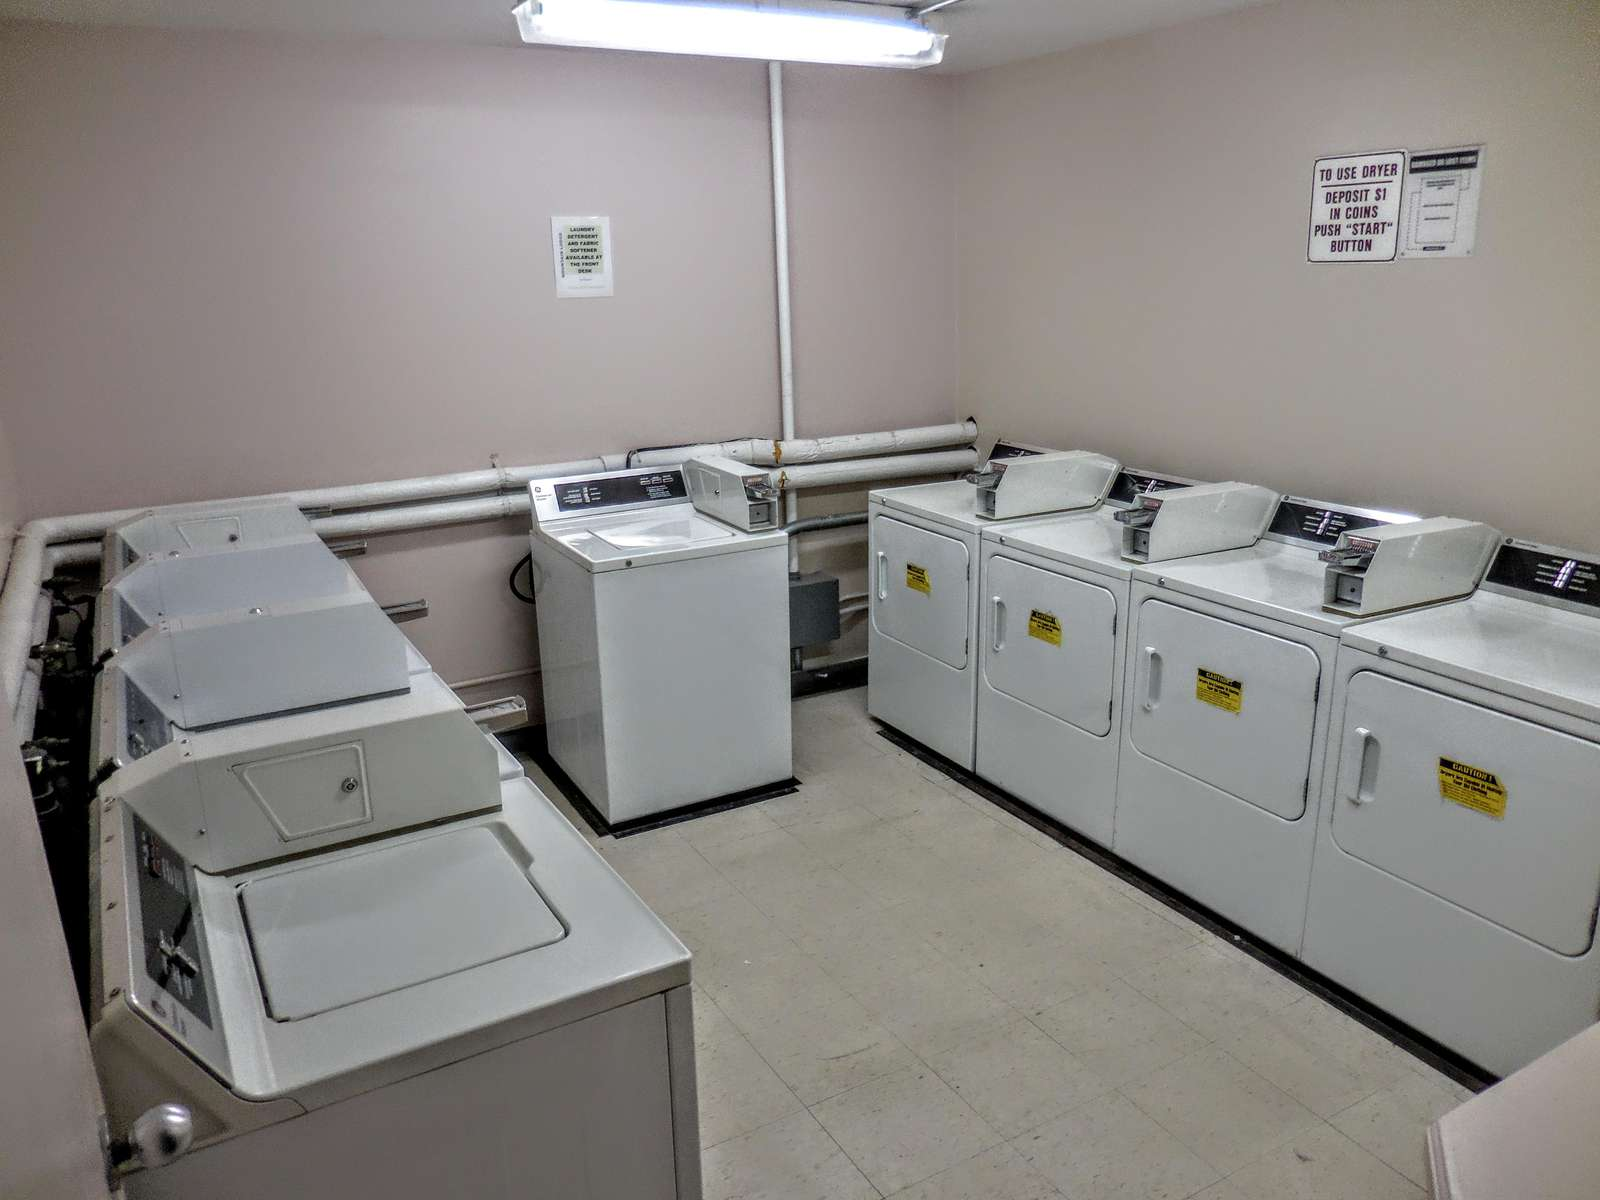 Coin-operated laundry facilities are located down the hallway from ML229 (on each floor)